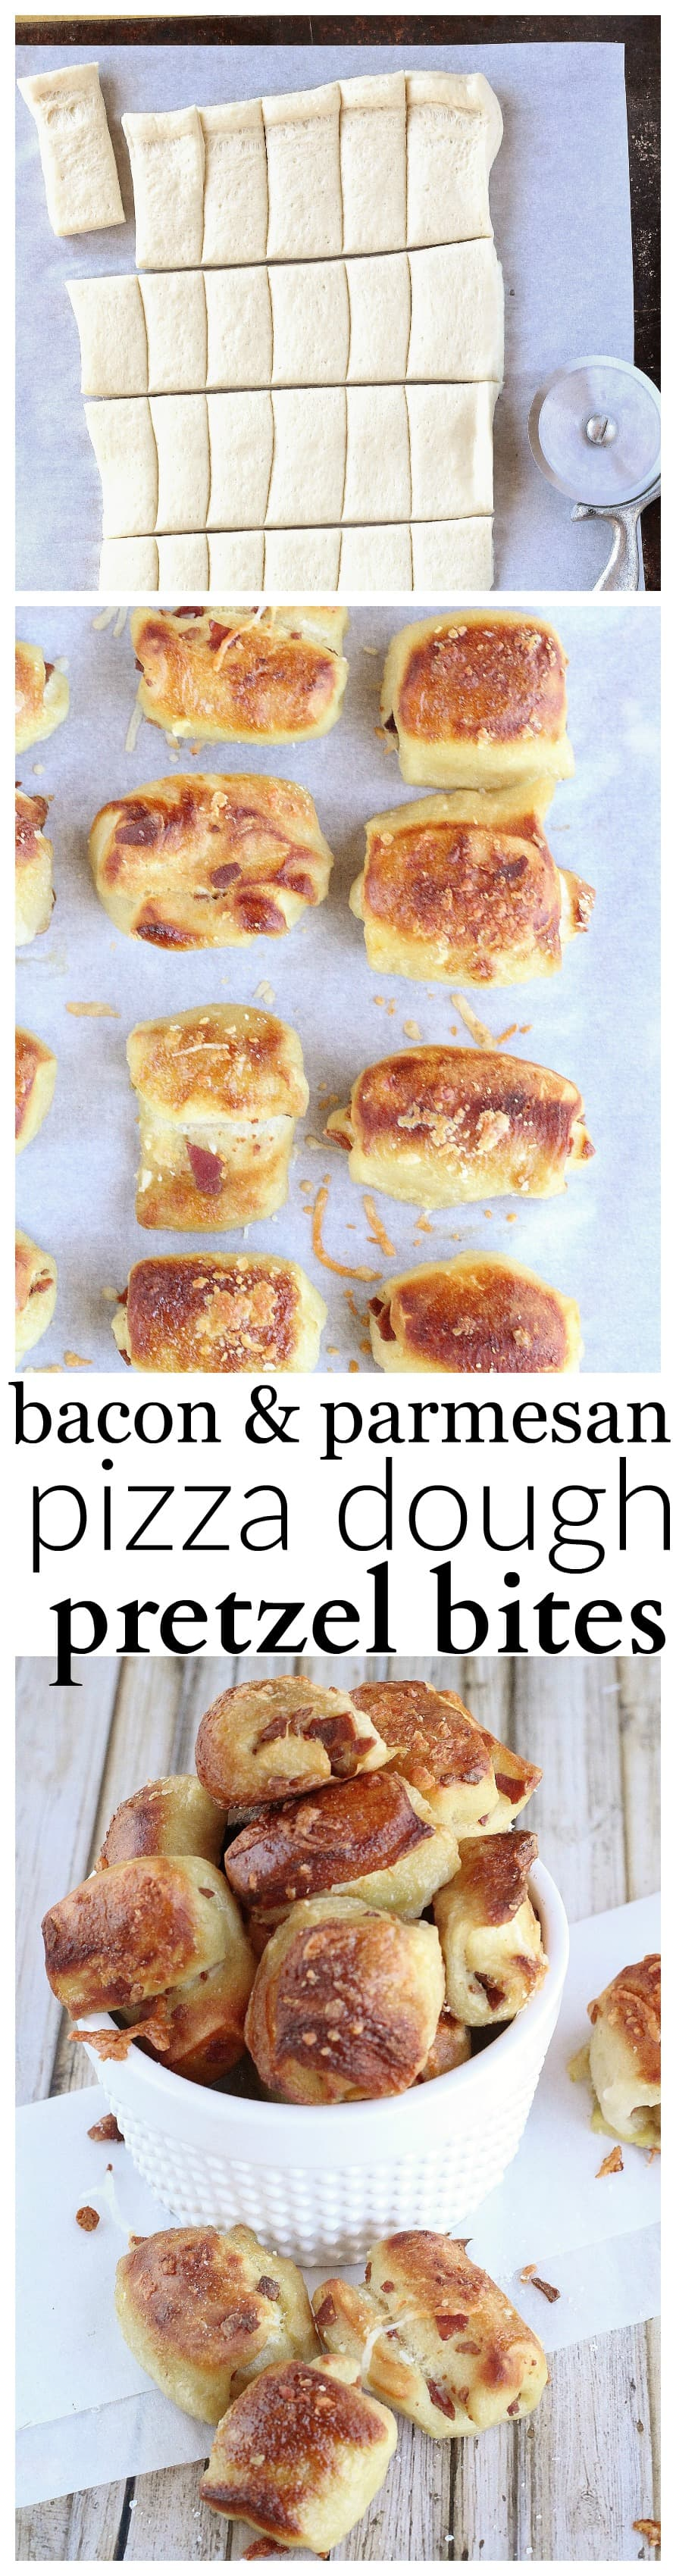 Bacon & Parmesan Pizza Dough Pretzel Bites - Life a Little ...